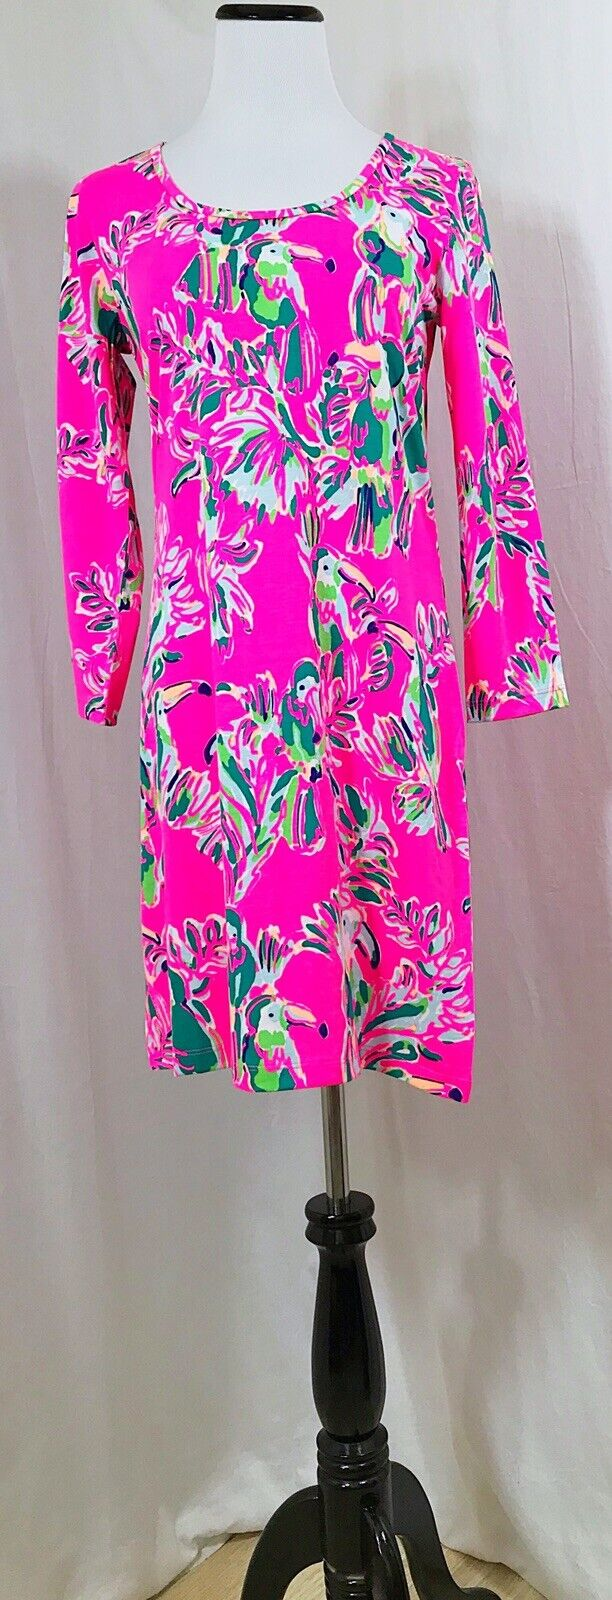 Lilly Pulitzer Robe Sz S Beacon robe rose vif Toucan peut Floral plage Shift